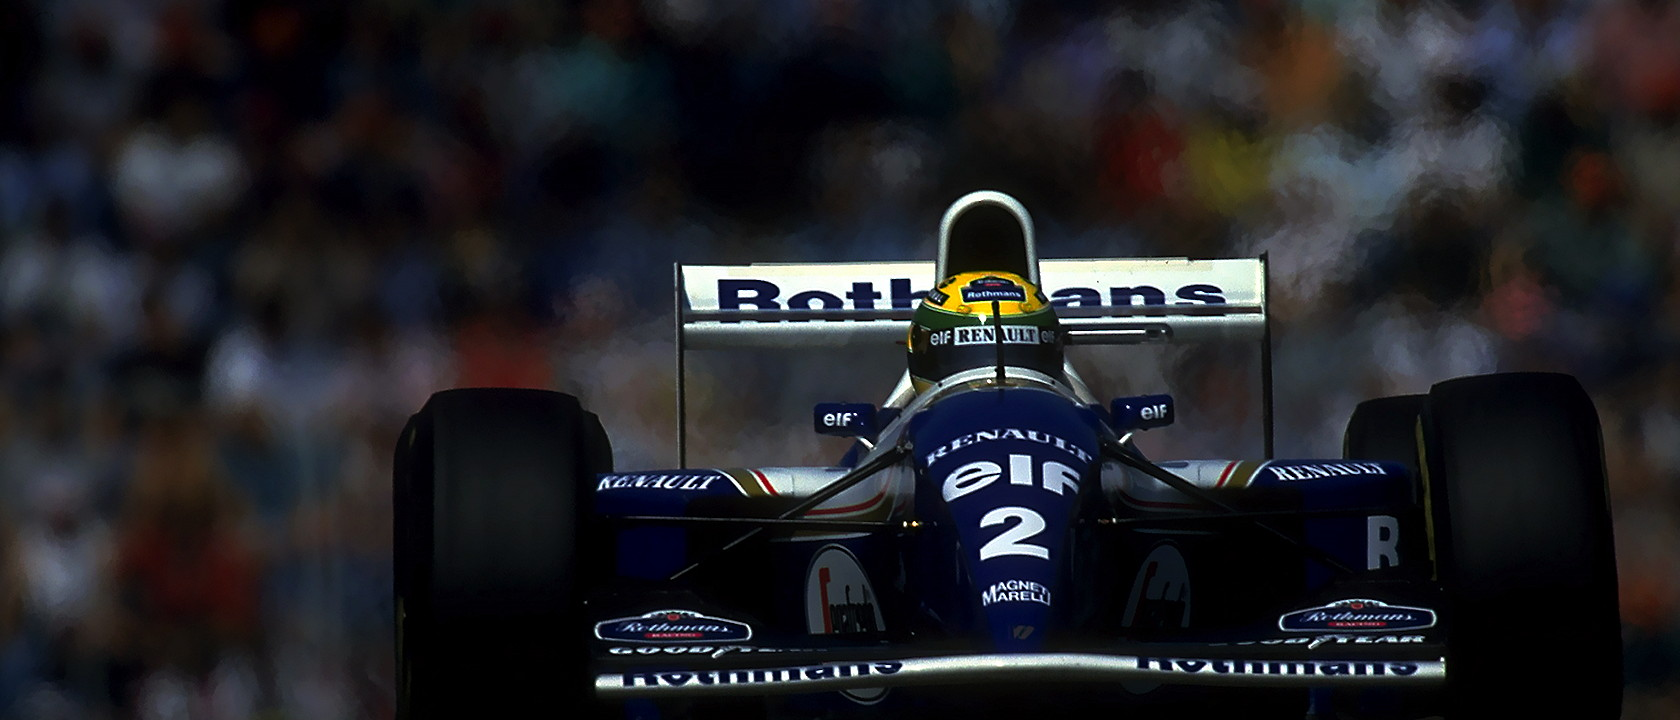 senna_williams-1680x720